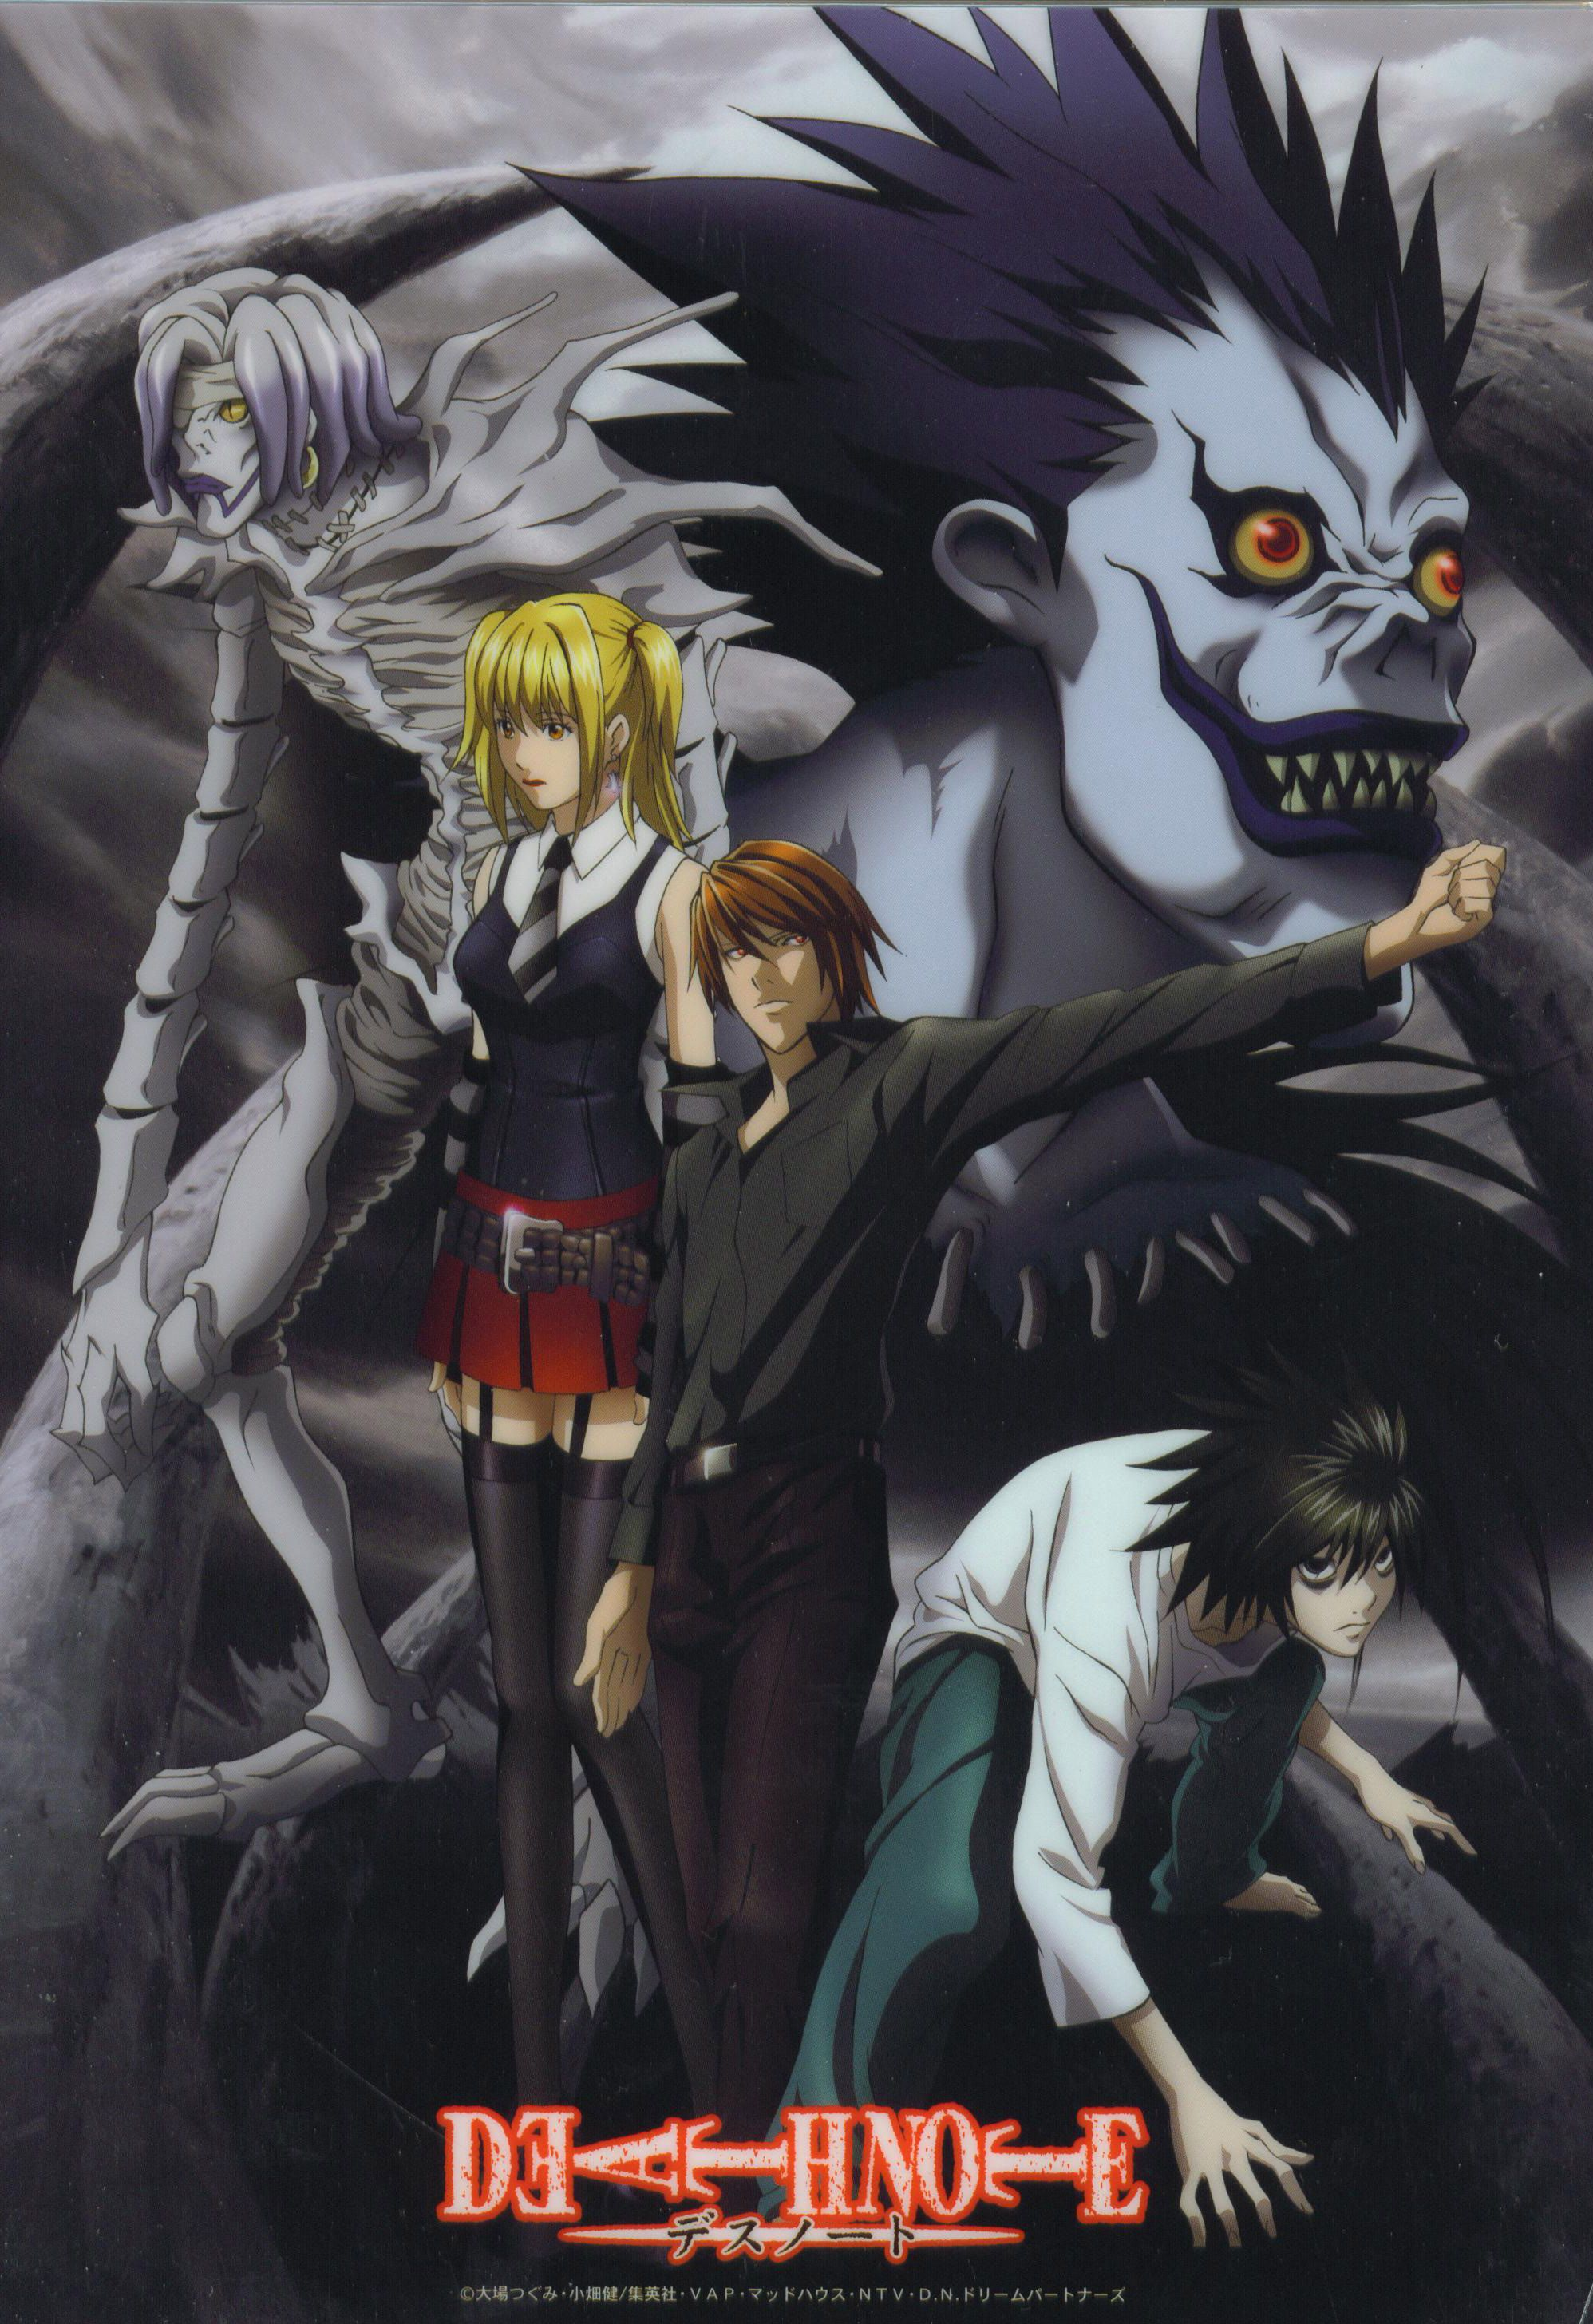 Death note デスノートdesu nōto anime adaptation directed by tetsuro araki written by tsugumi oba and illustrated by takeshi obata anime